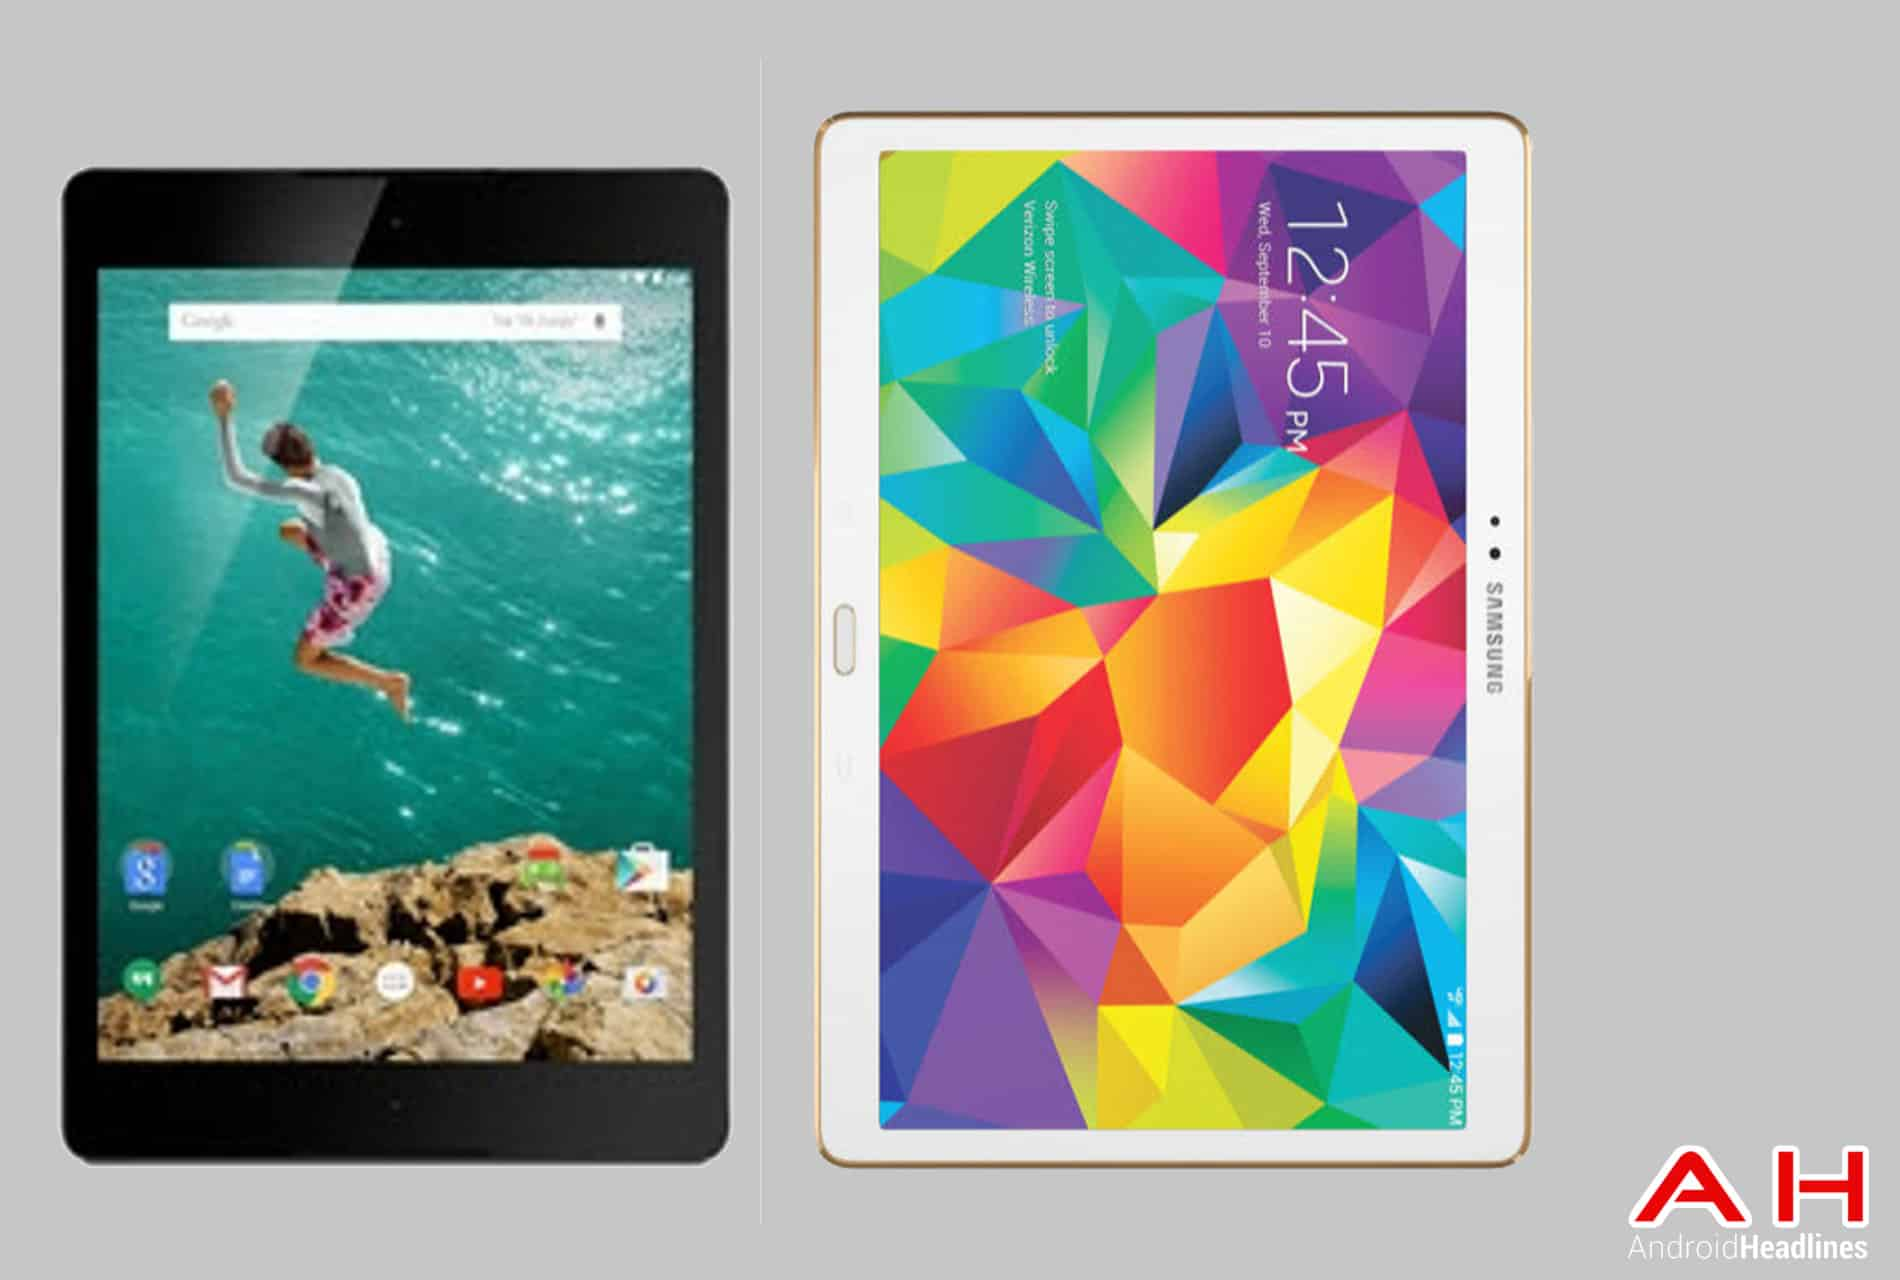 Nexus 9 vs Galaxy Tab S 10.5 cam AH